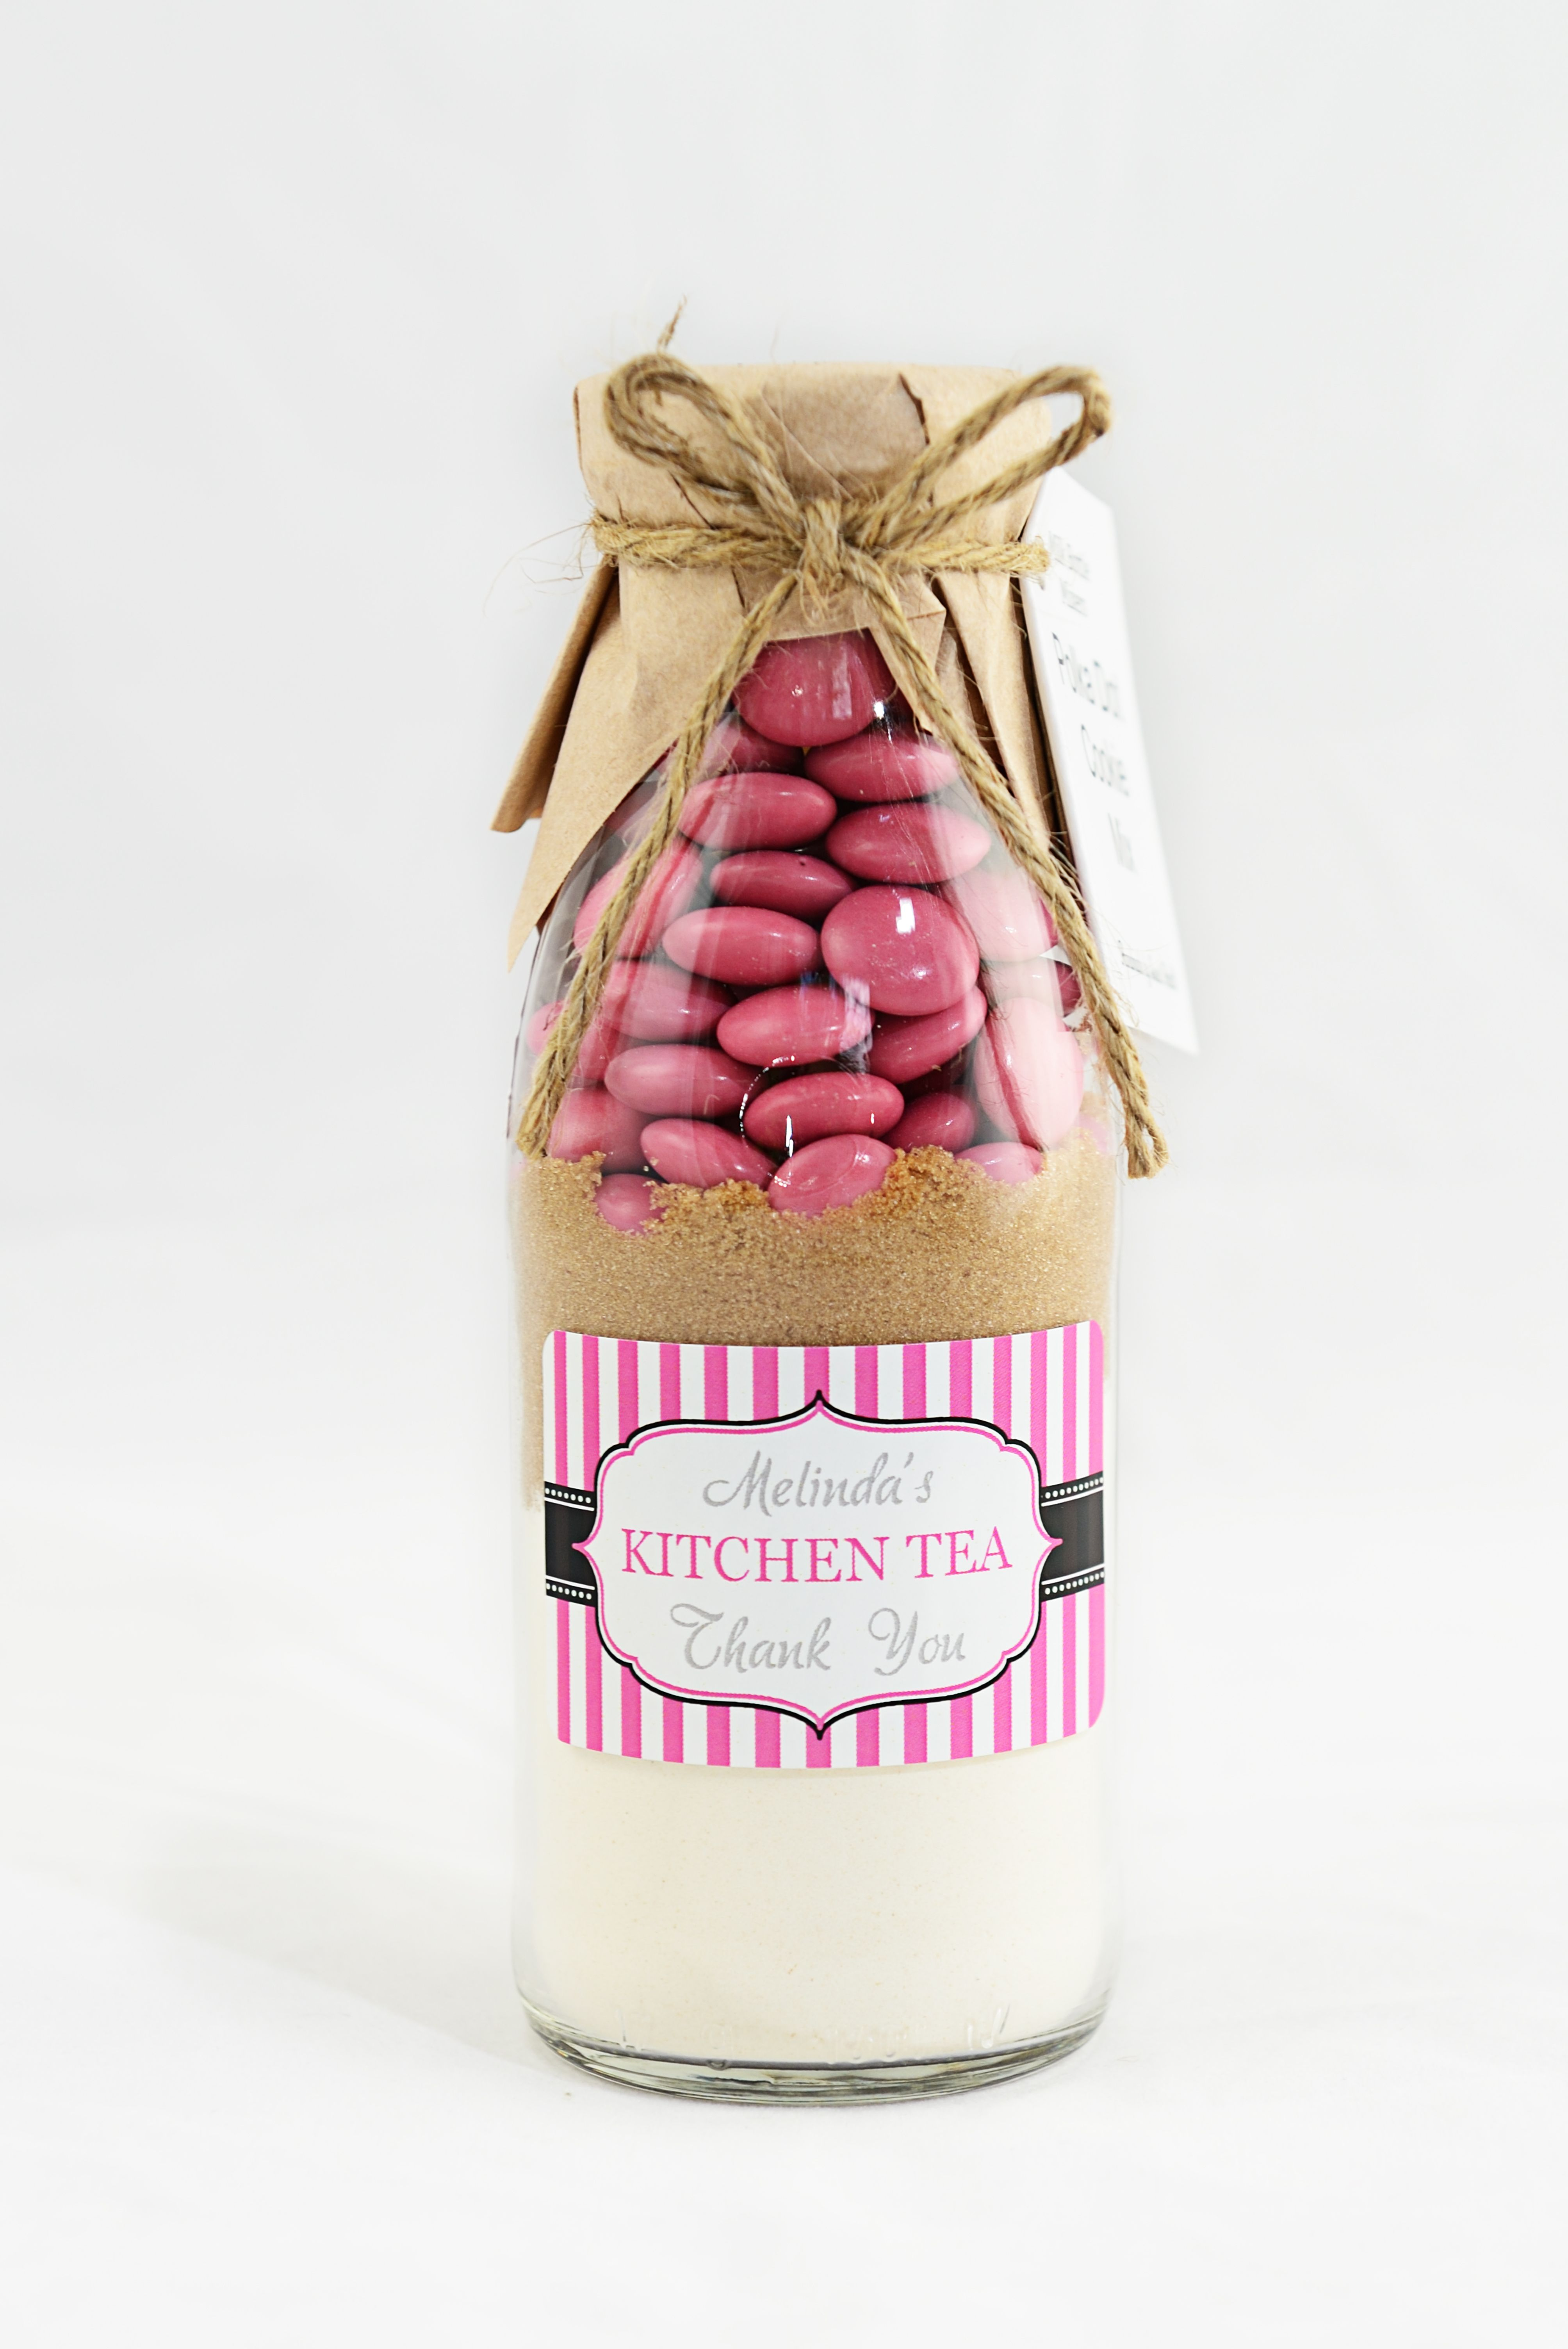 Polka Dot Cookie Mix dressed in a vertical striped label. This was a ...